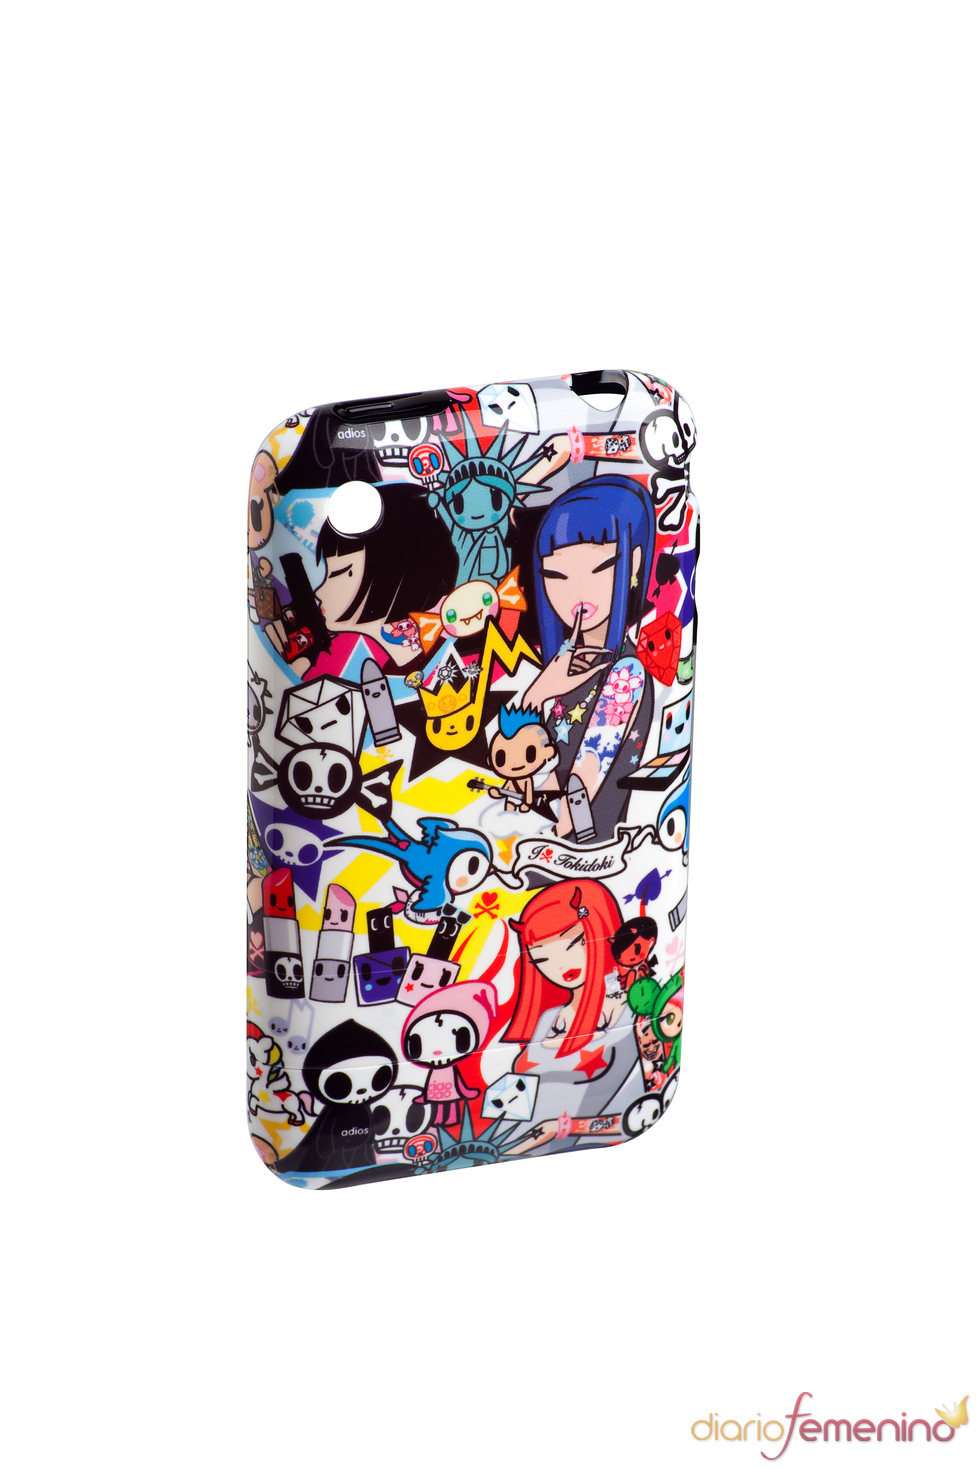 Funda Iphone Adios 3G de tokidoki